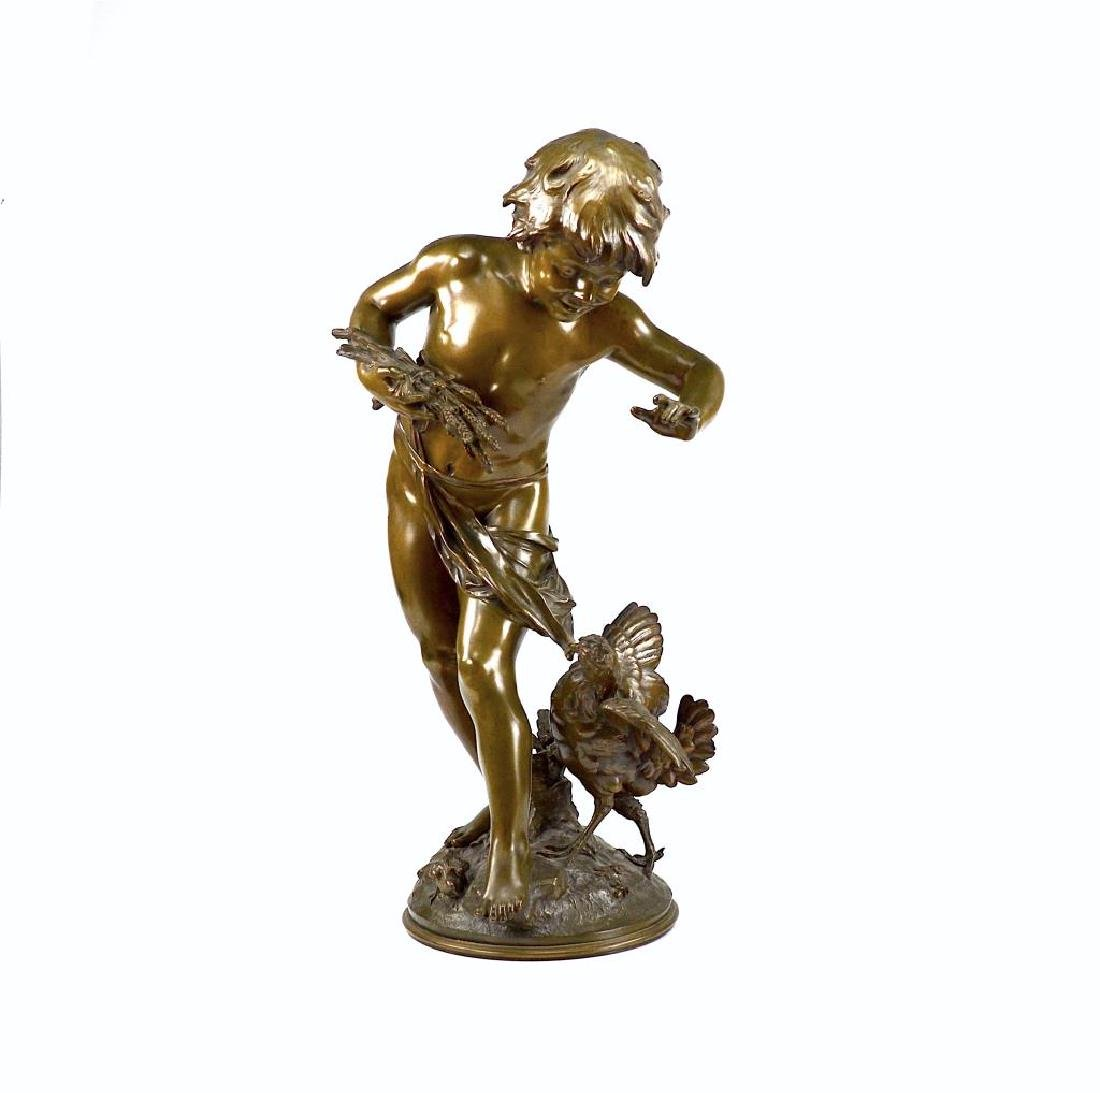 FRENCH BRONZE SCULPTURE OF A BOY